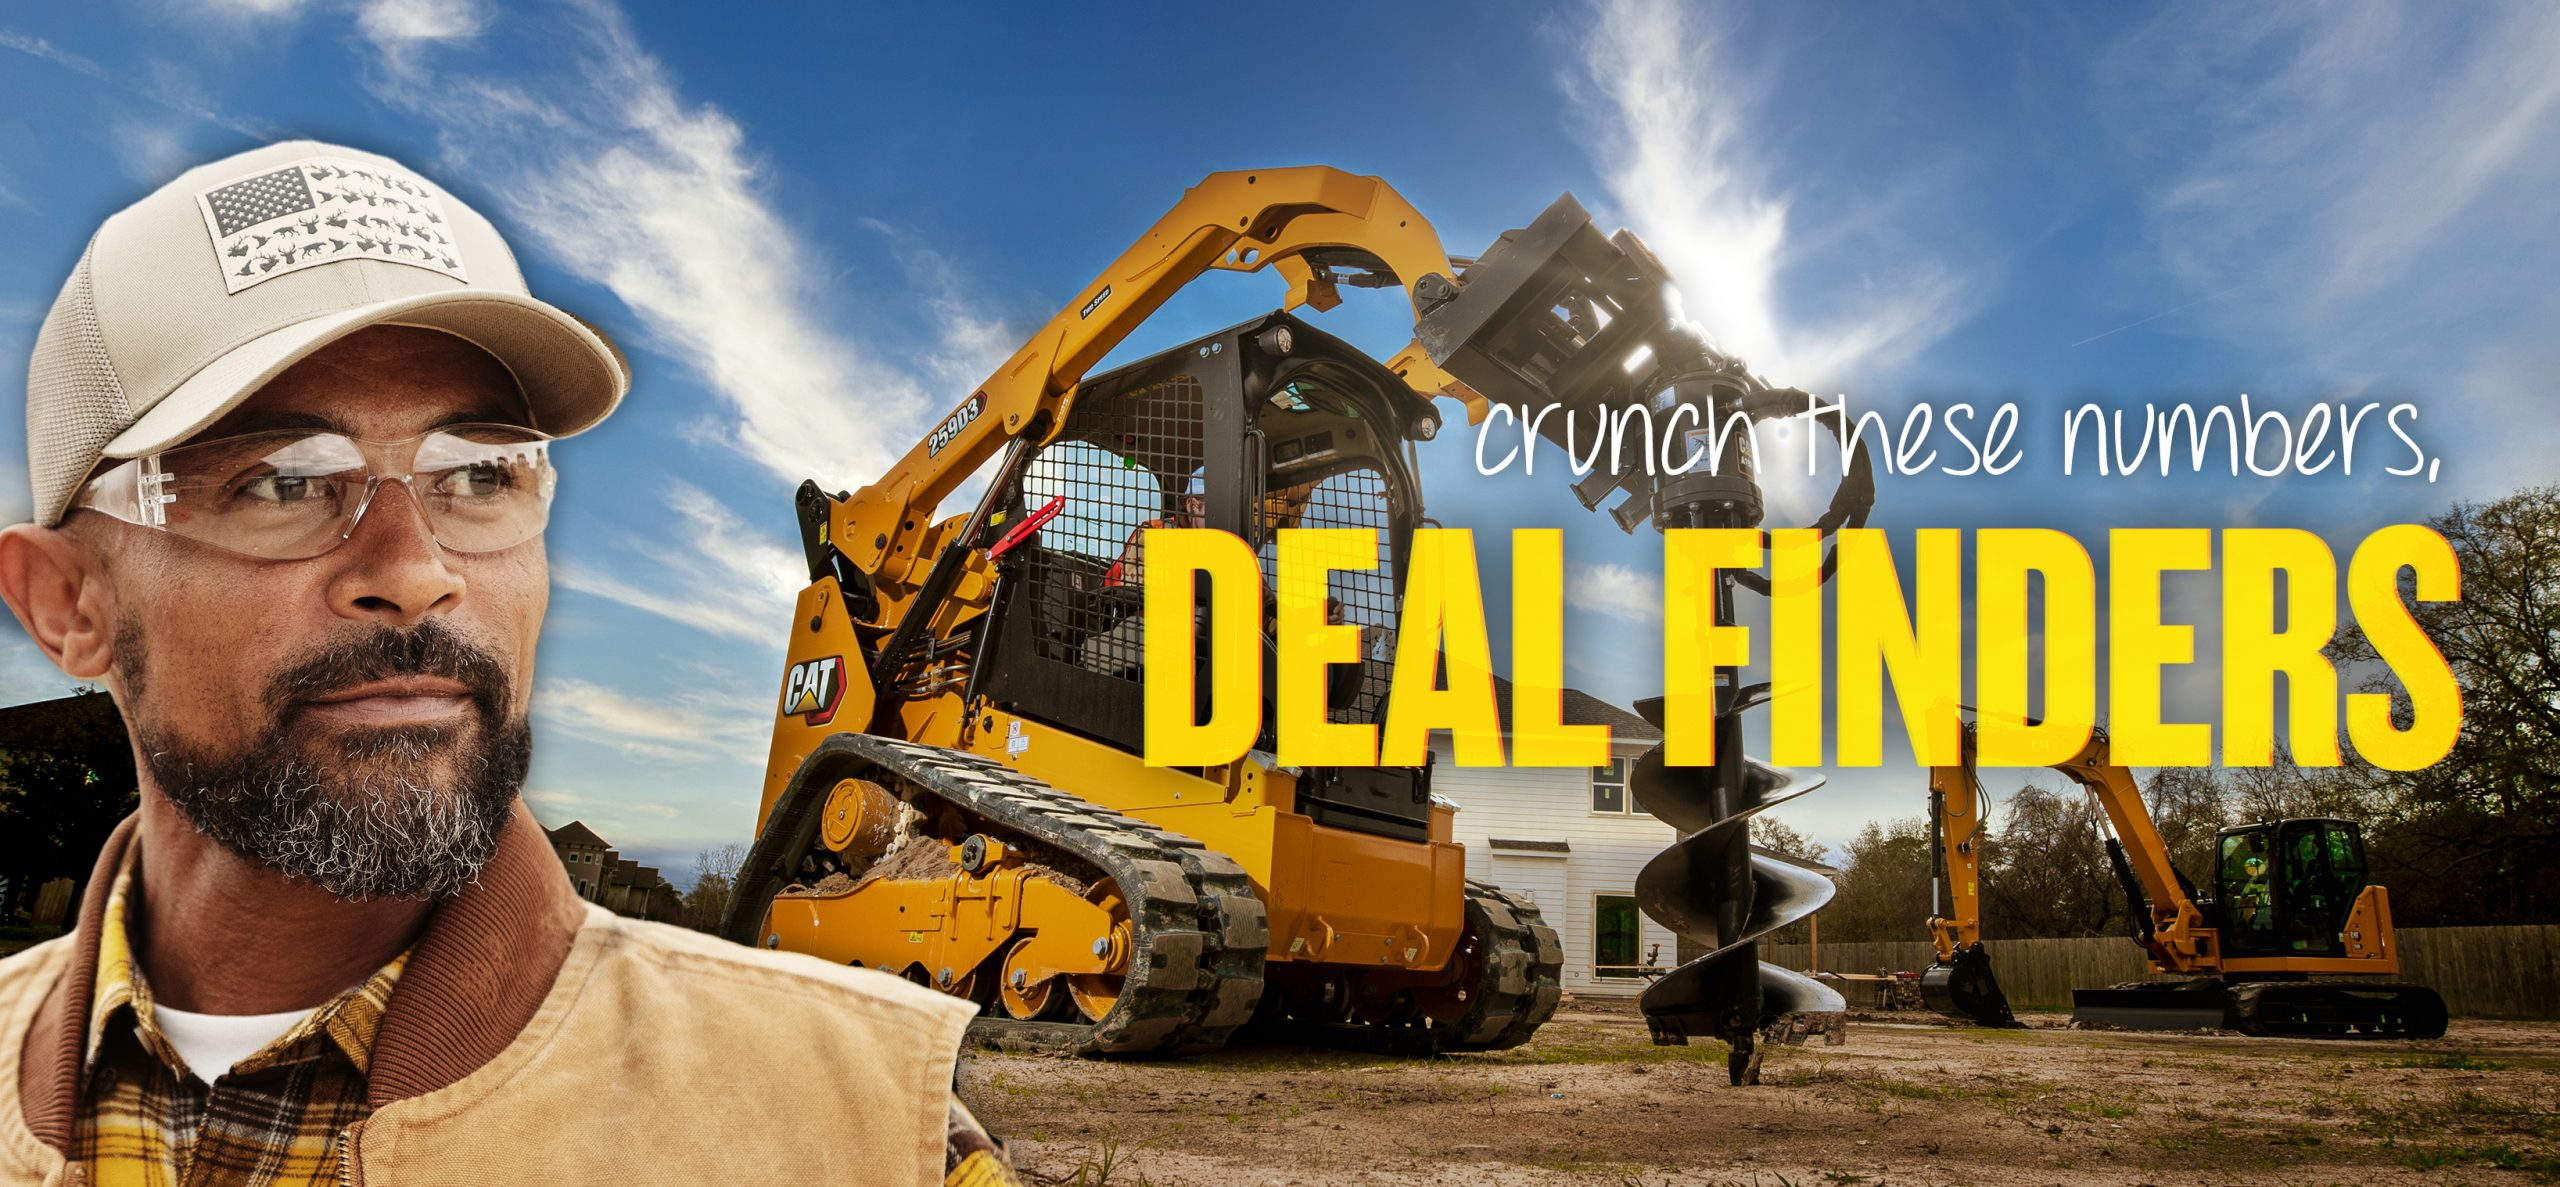 Zero percent financing on small and midsize equipment